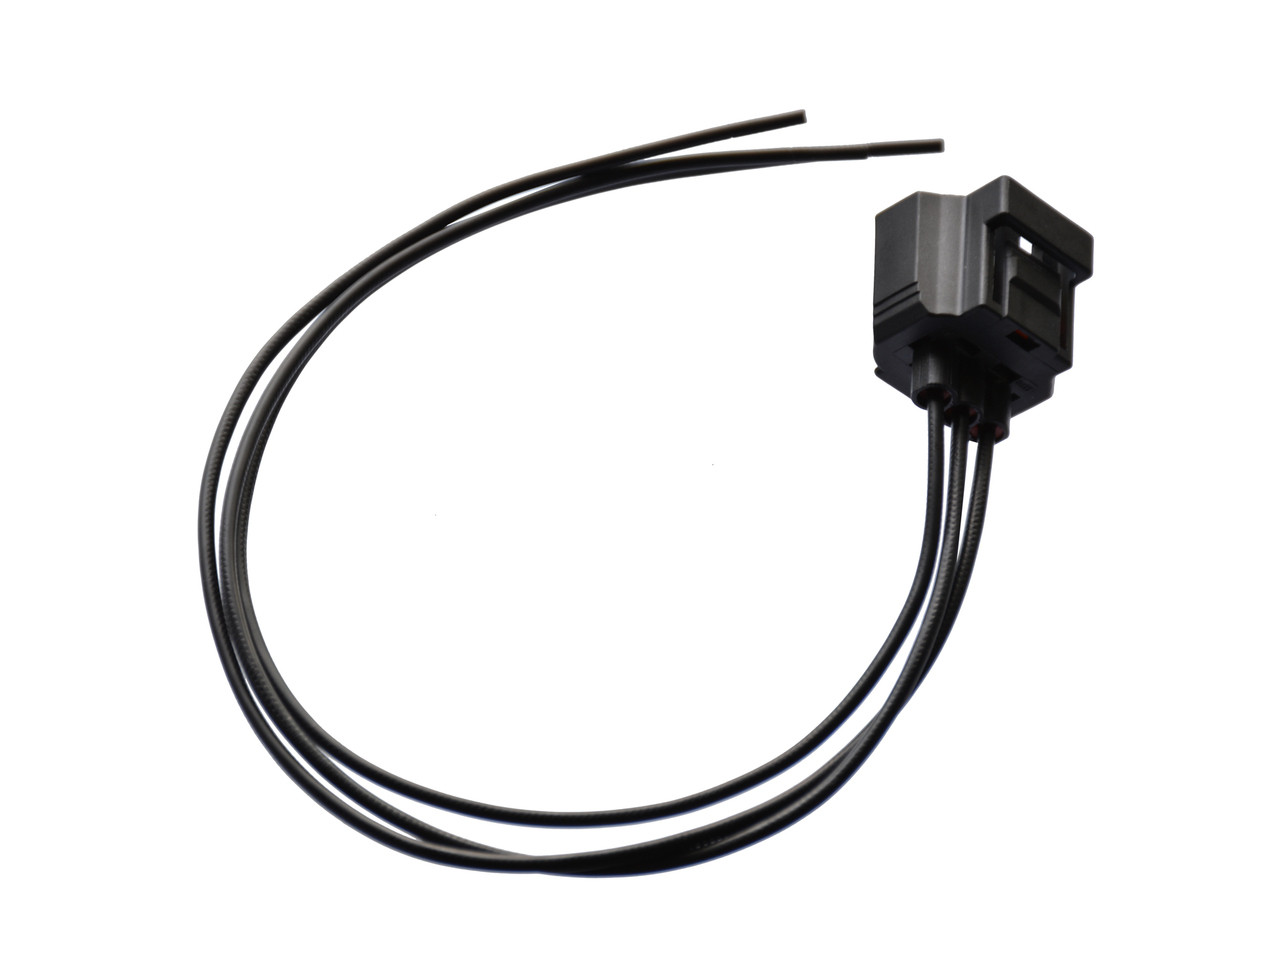 hight resolution of ford alternator connector 3 wire plug mustang crown victoria wpt118 ford 3 wire alternator connector plug